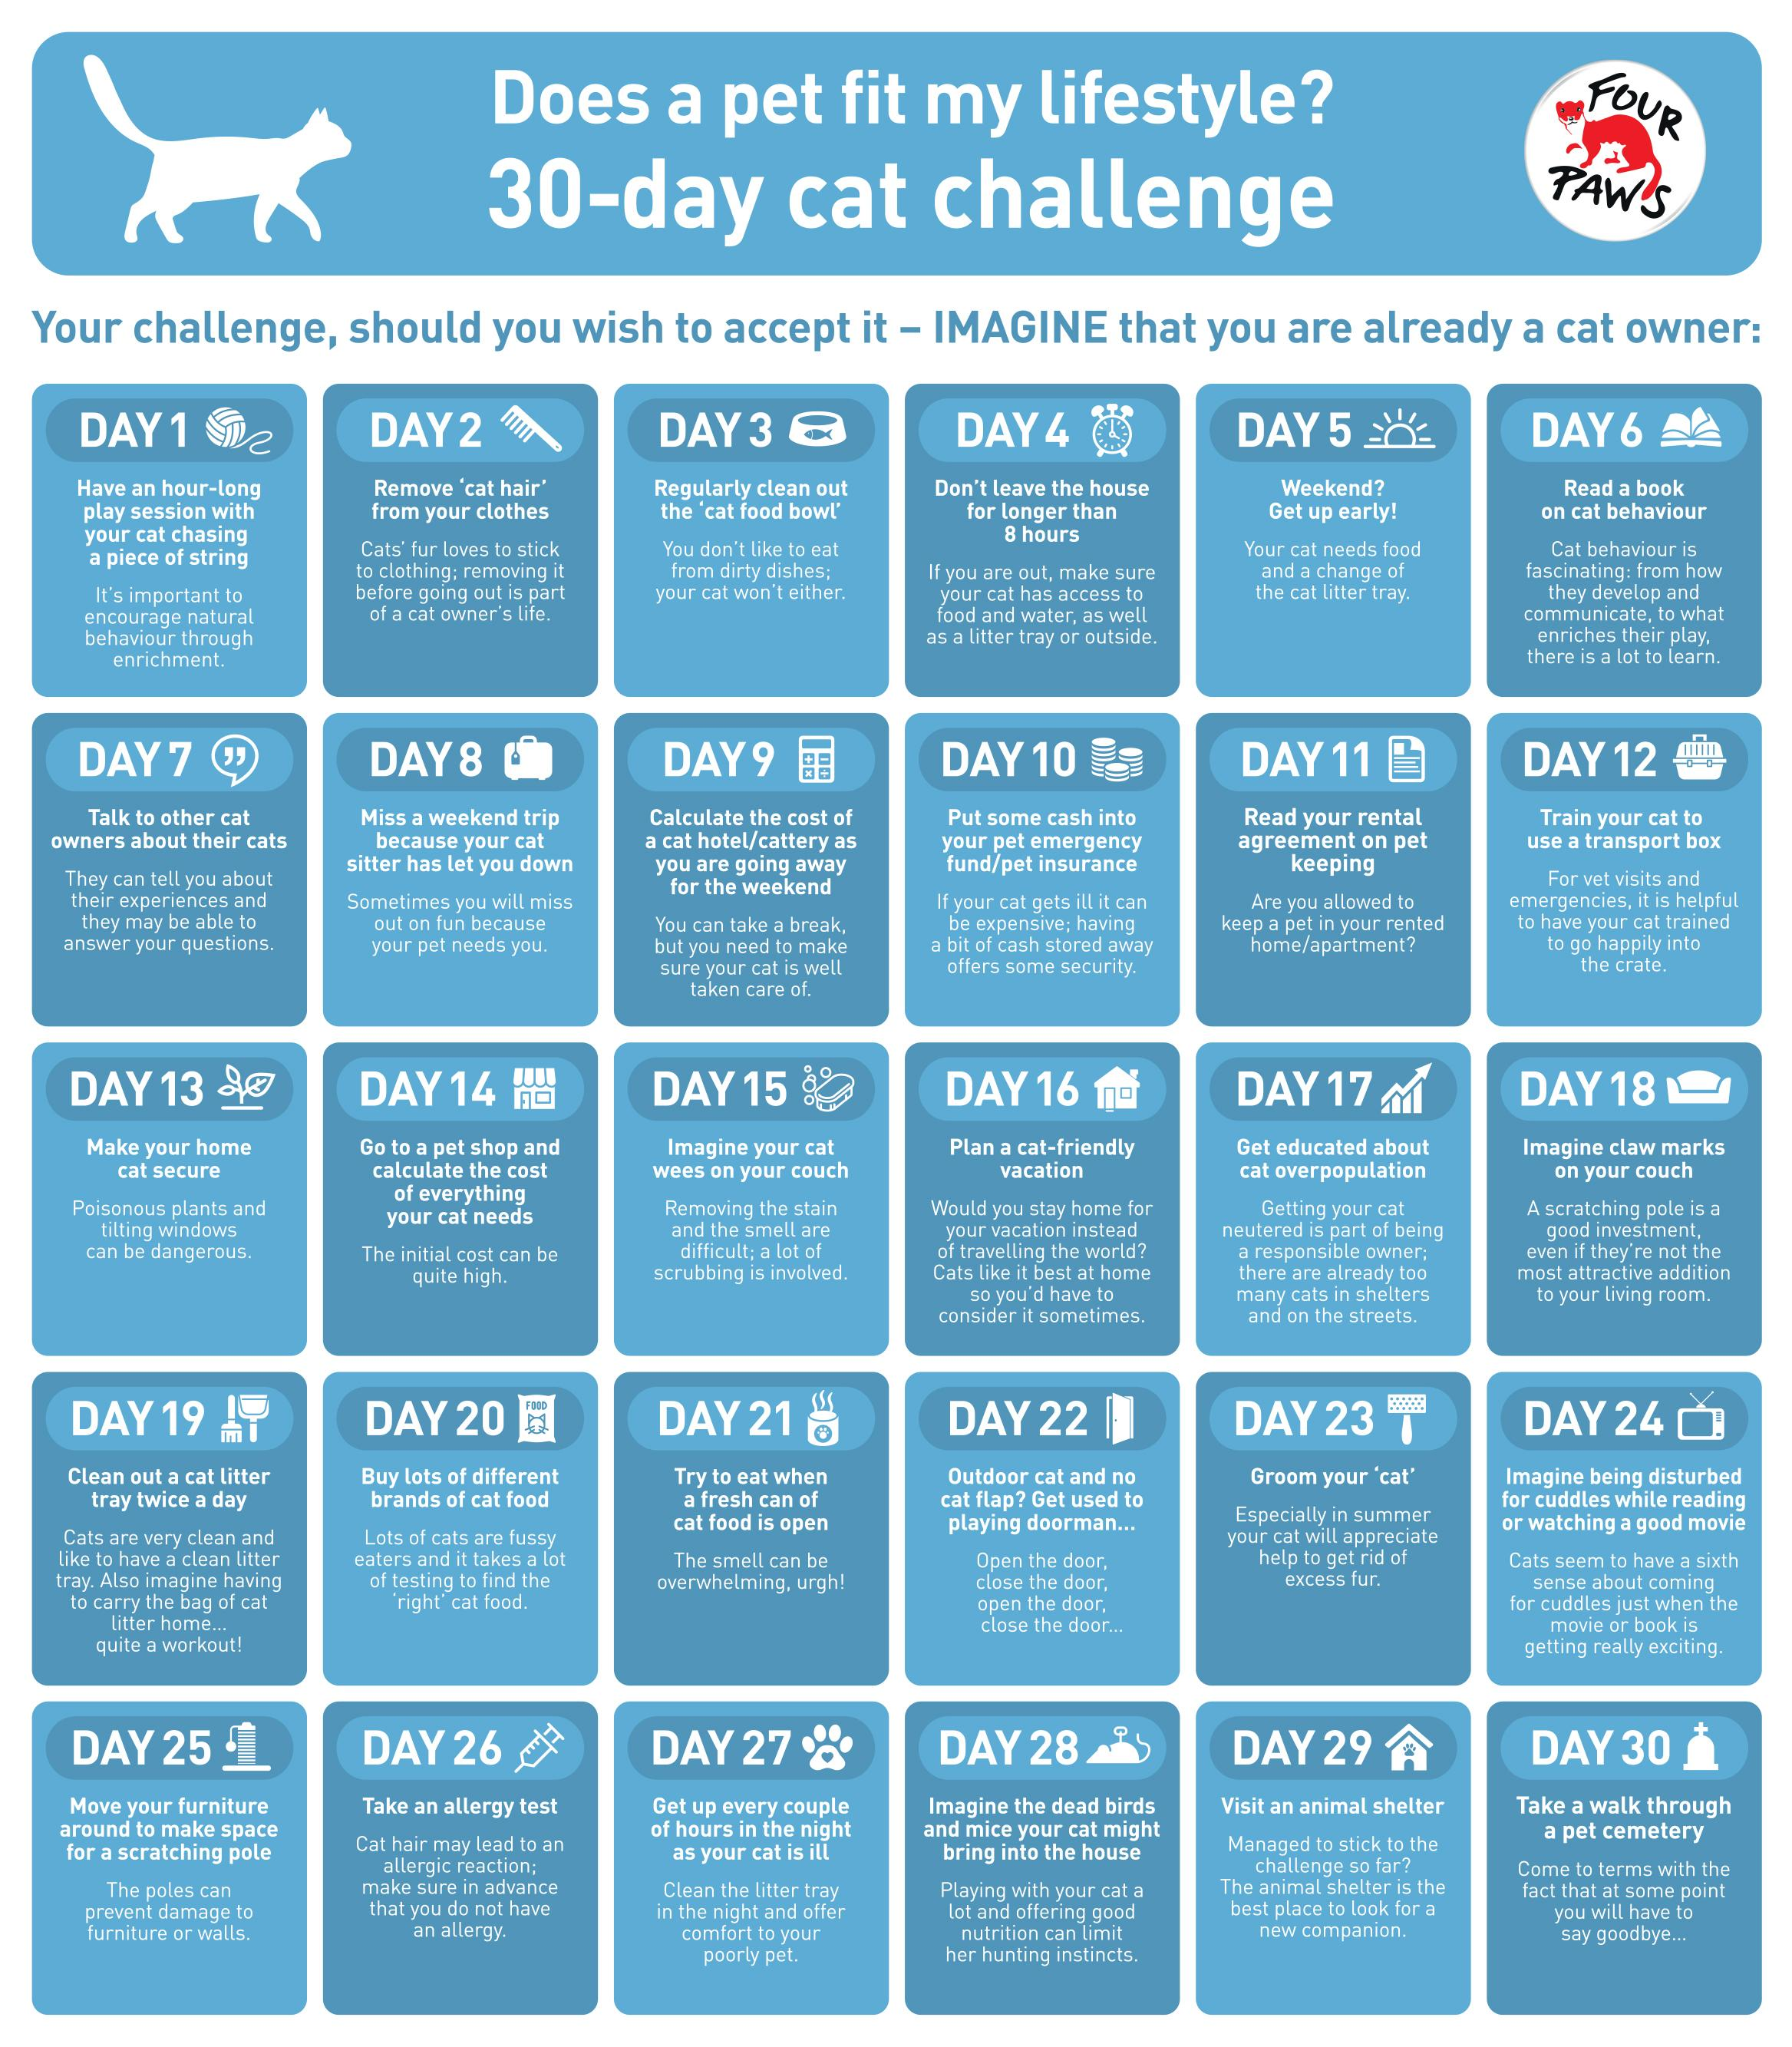 FOUR PAWS 30-day cat challenge